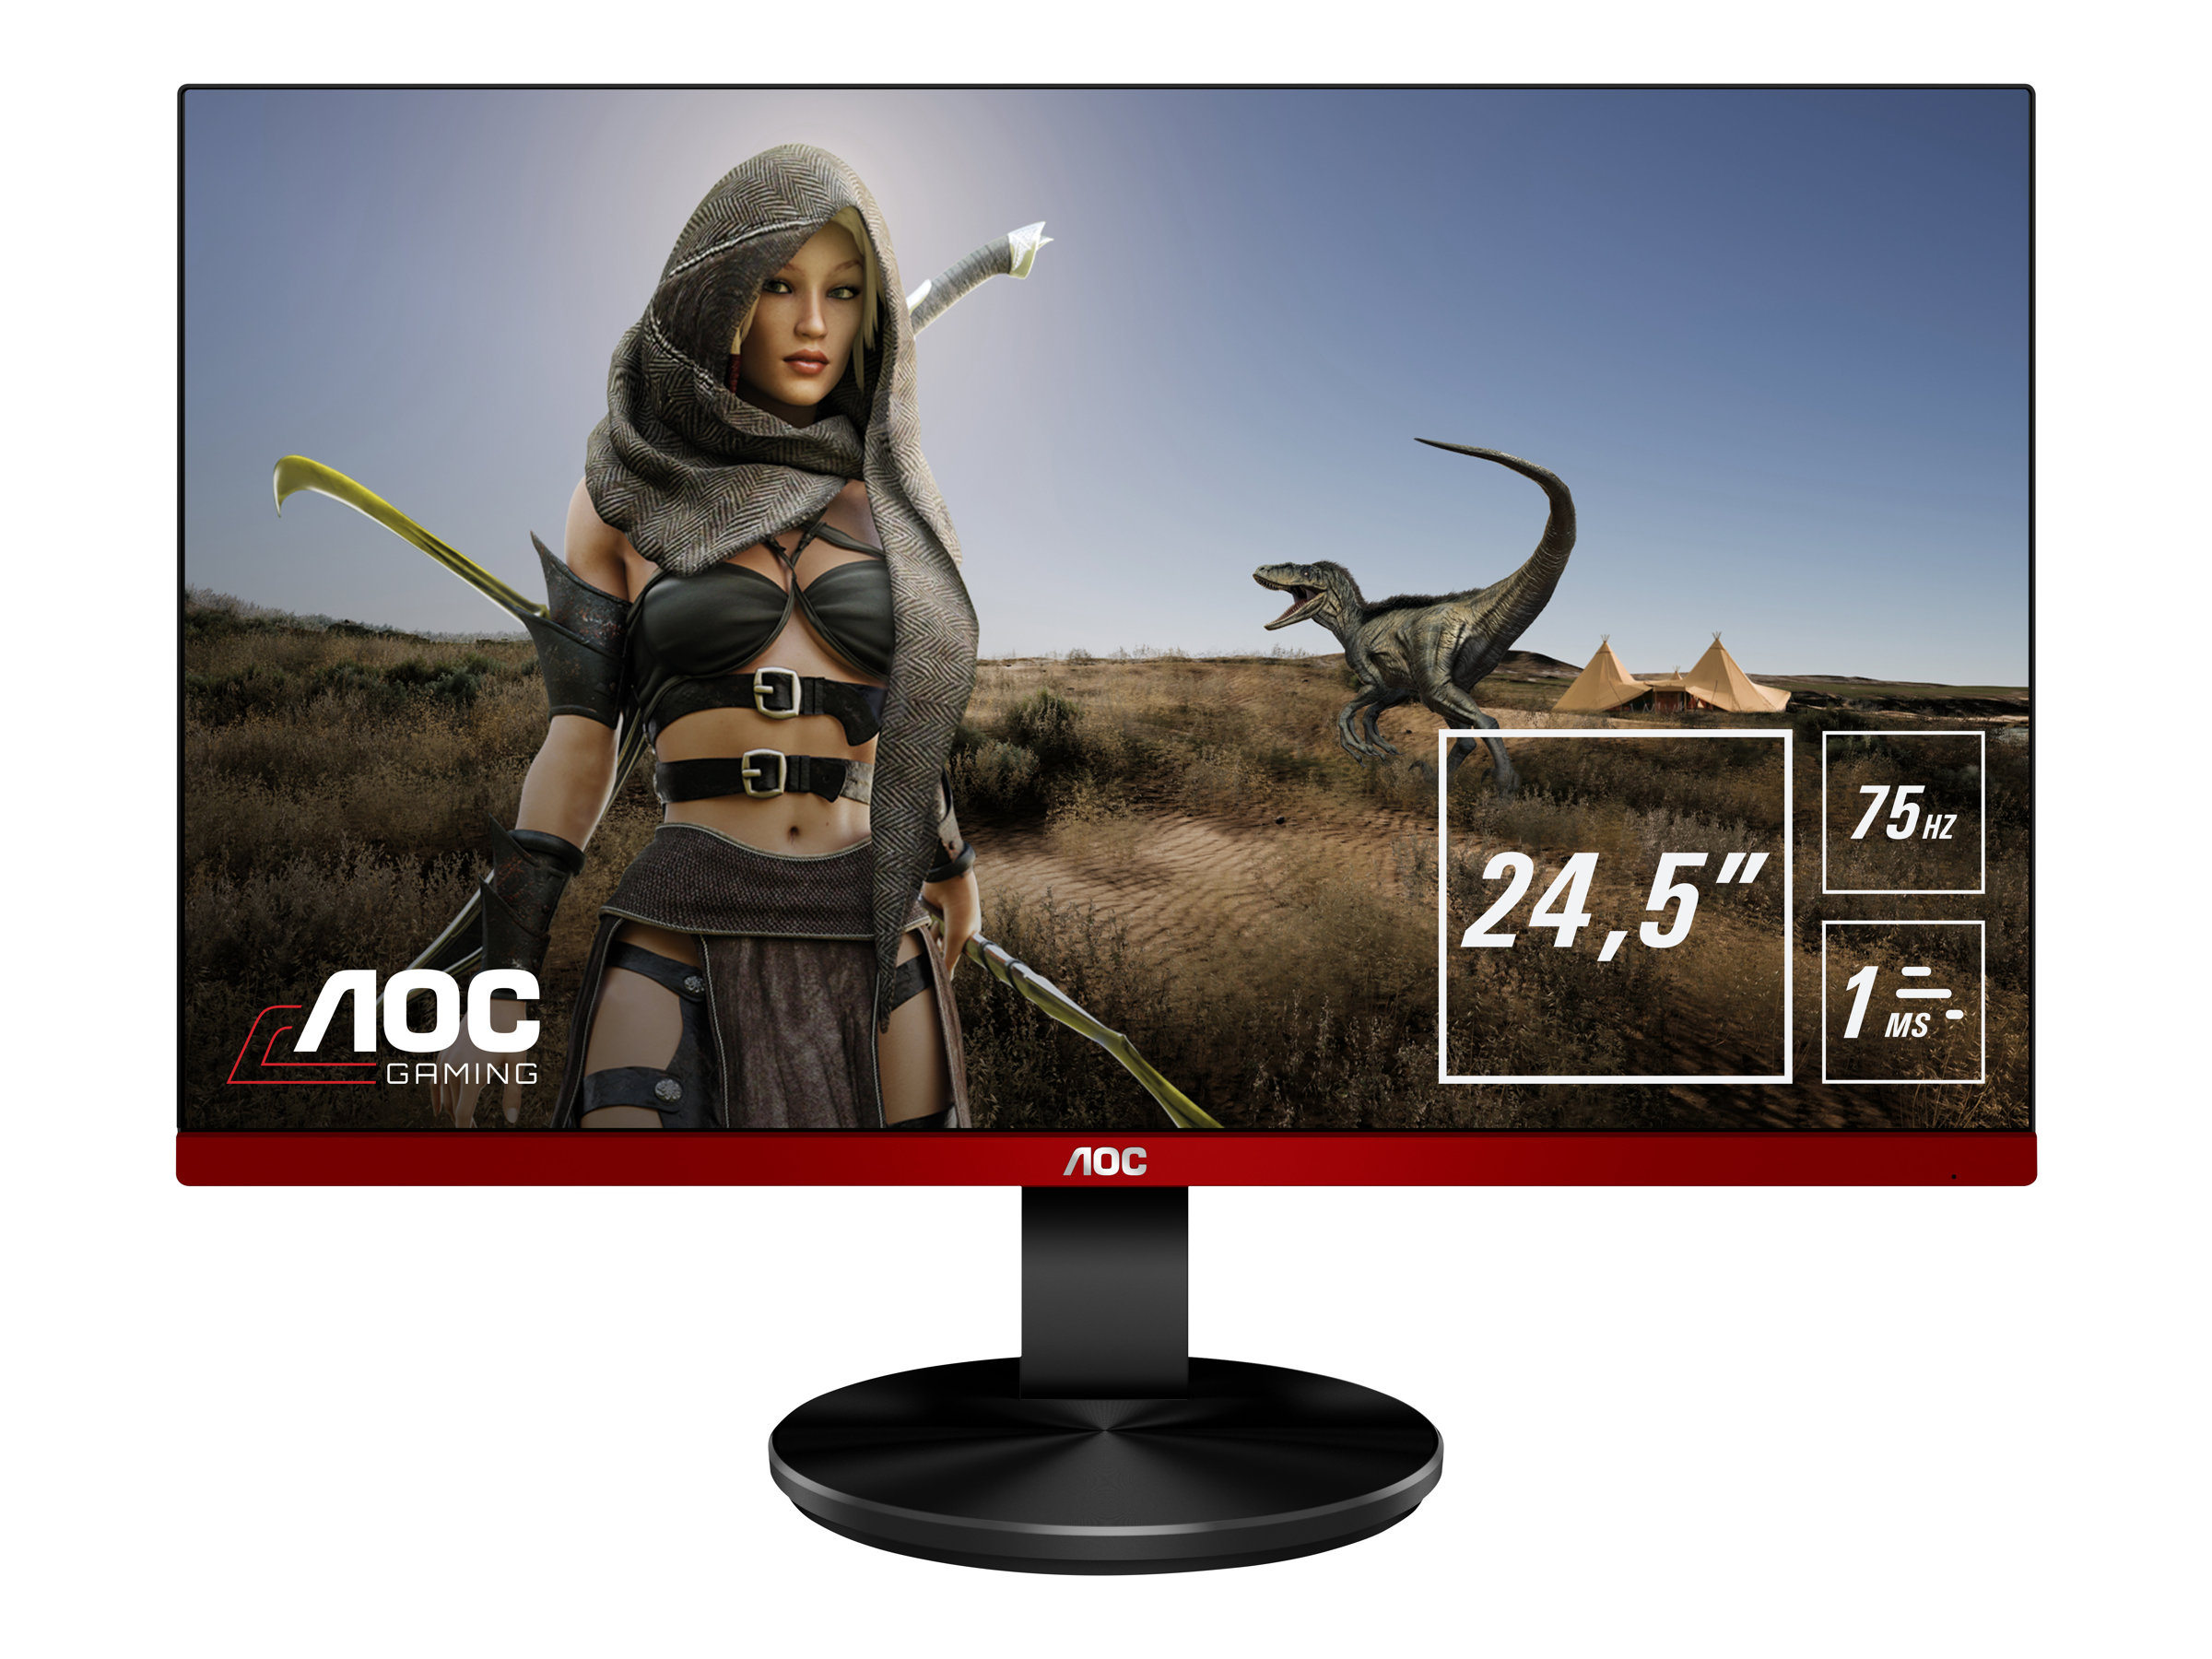 "AOC Gaming G2590VXQ - LED-Monitor - 62.2 cm (24.5"") 1920 x 1080 Full HD (1080p) - TN - 250 cd/m² - 1000:1 - 1 ms - 2xHDMI - VGA - DP - Lautsprecher"